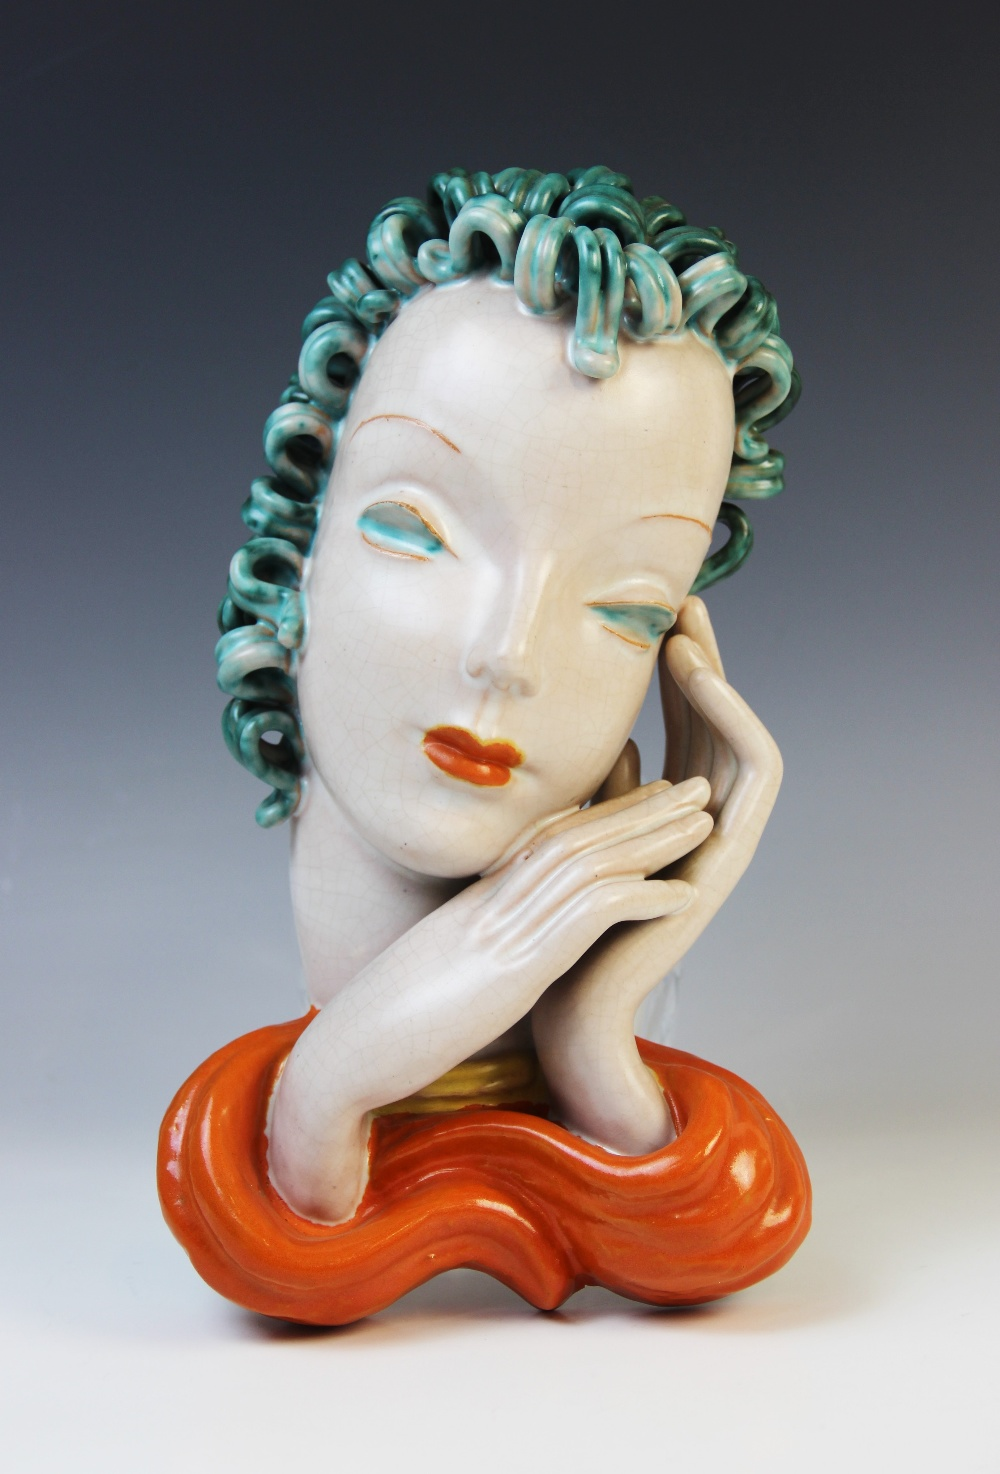 An Art Deco Goldscheider wall mask, early 20th century, modelled as a lady with blue curled hair and